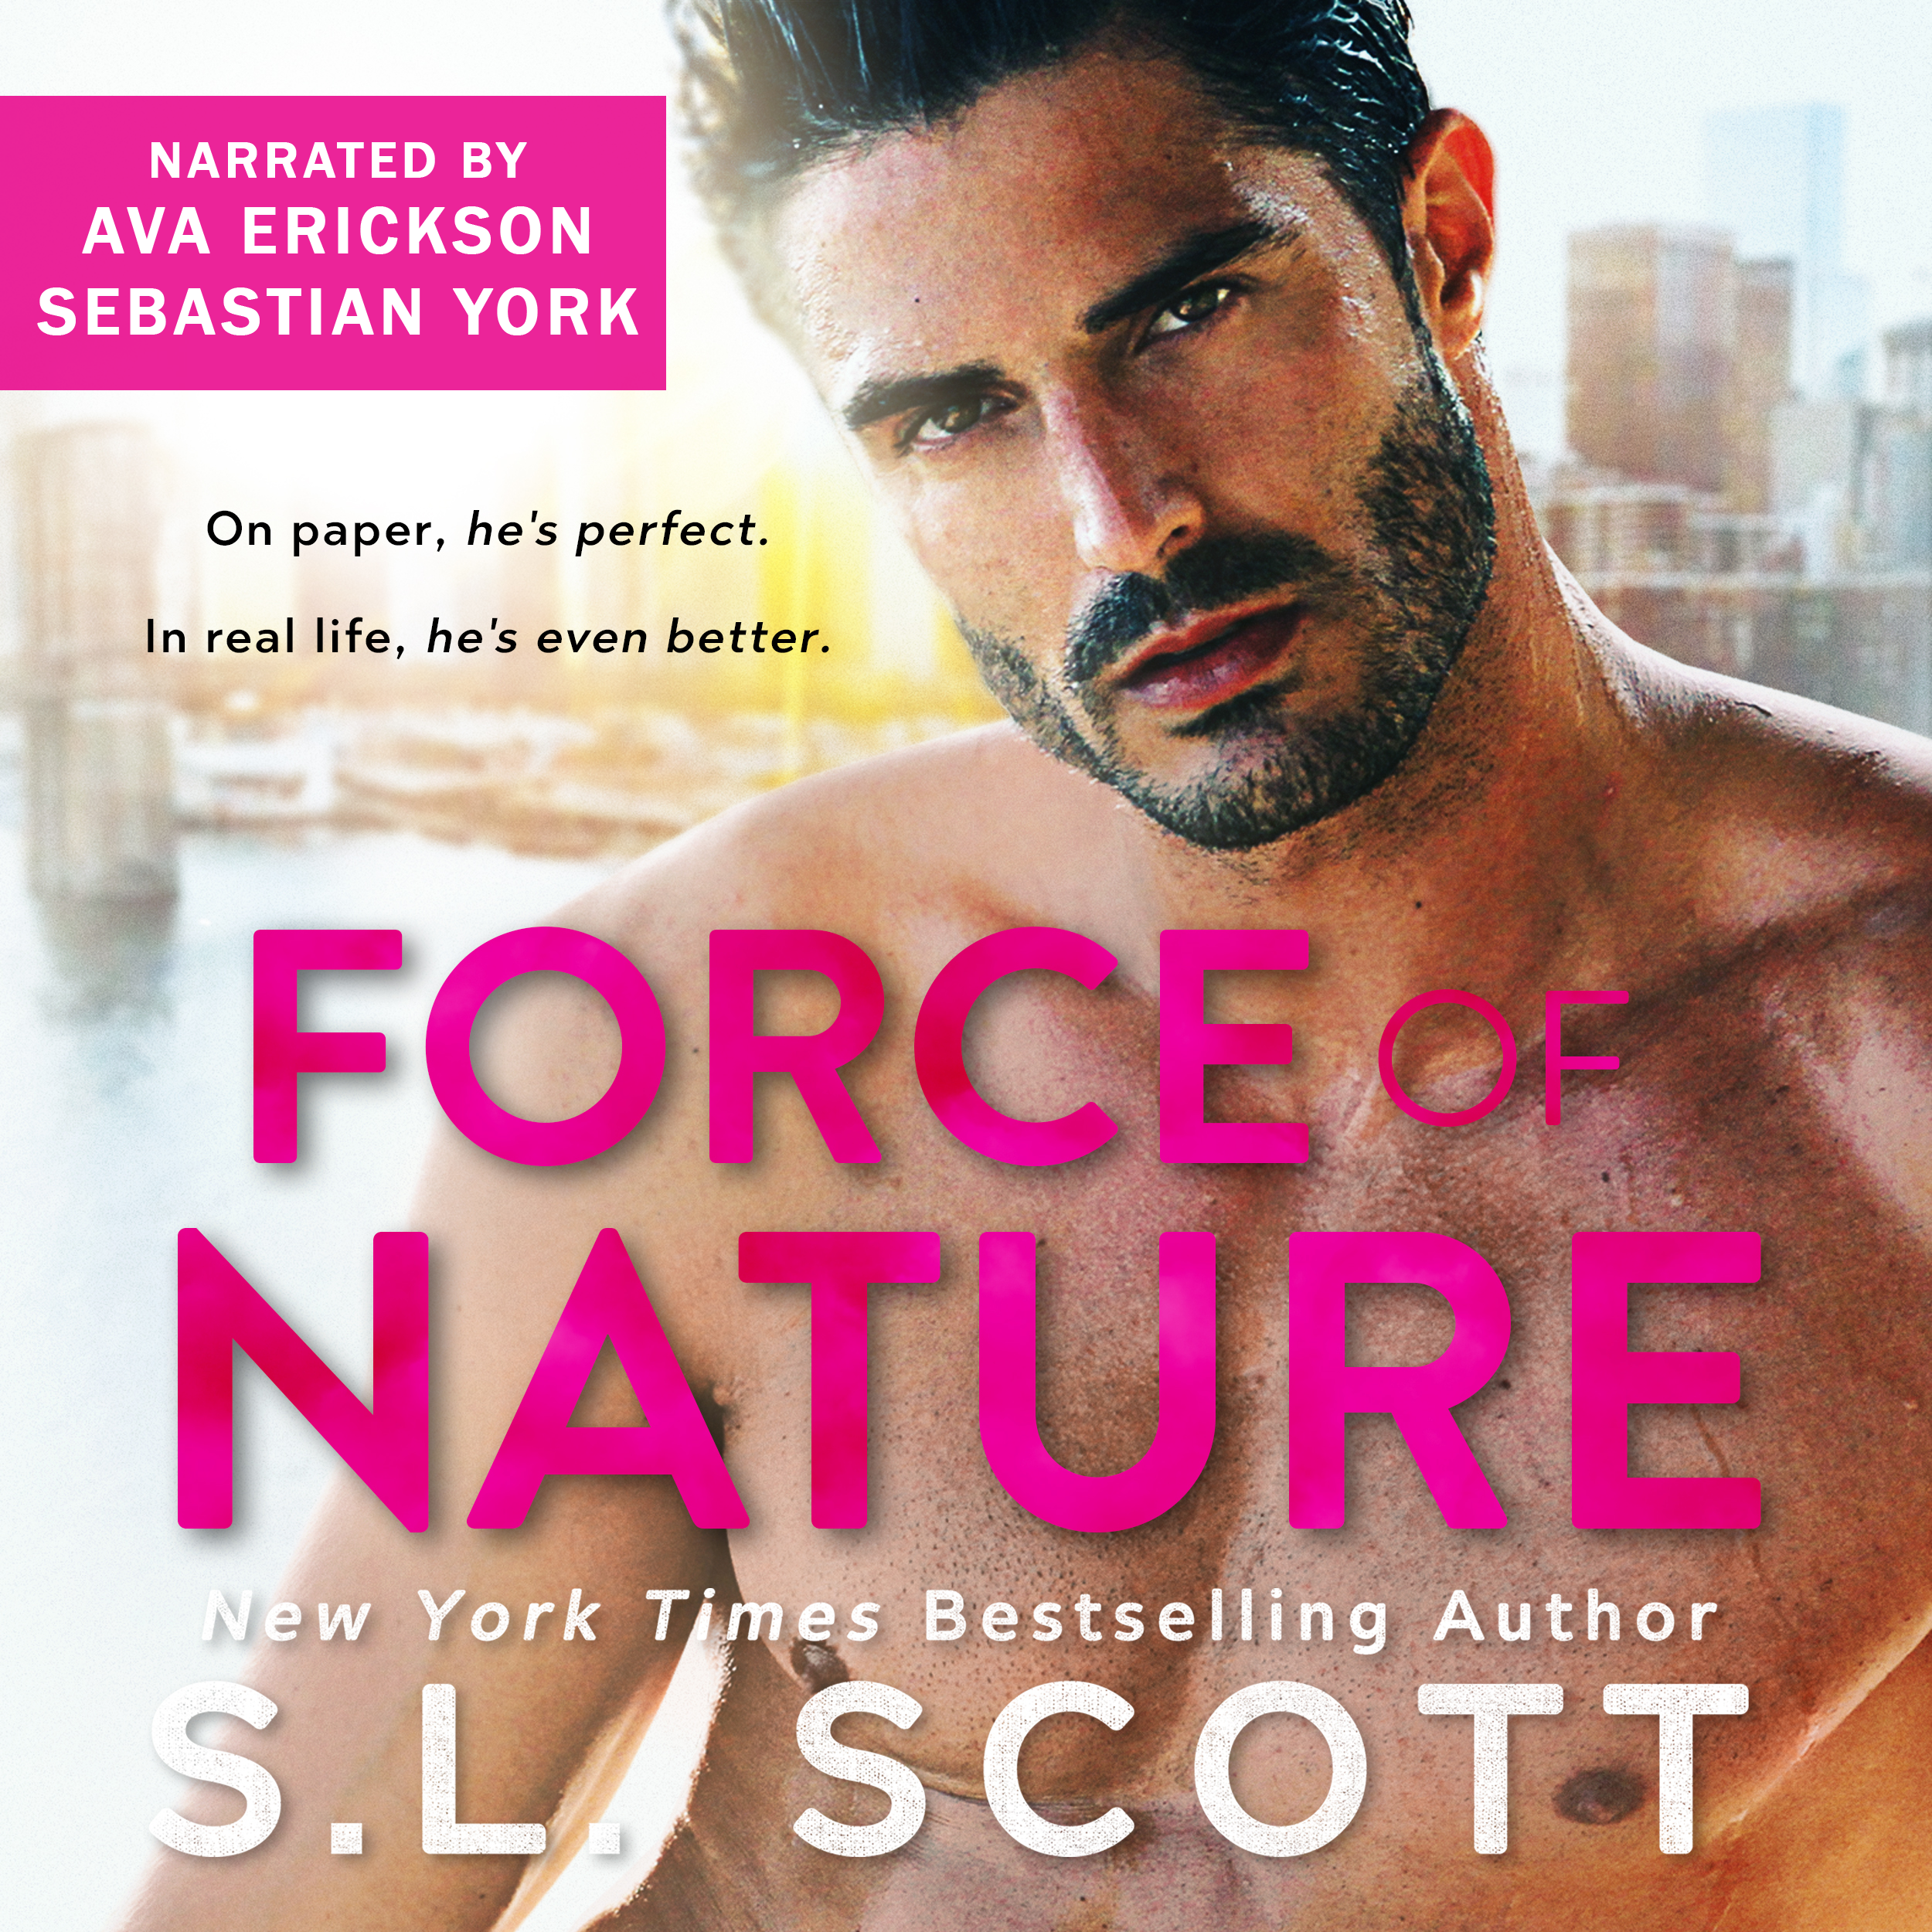 Force of Nature Audiobook Cover 1.png